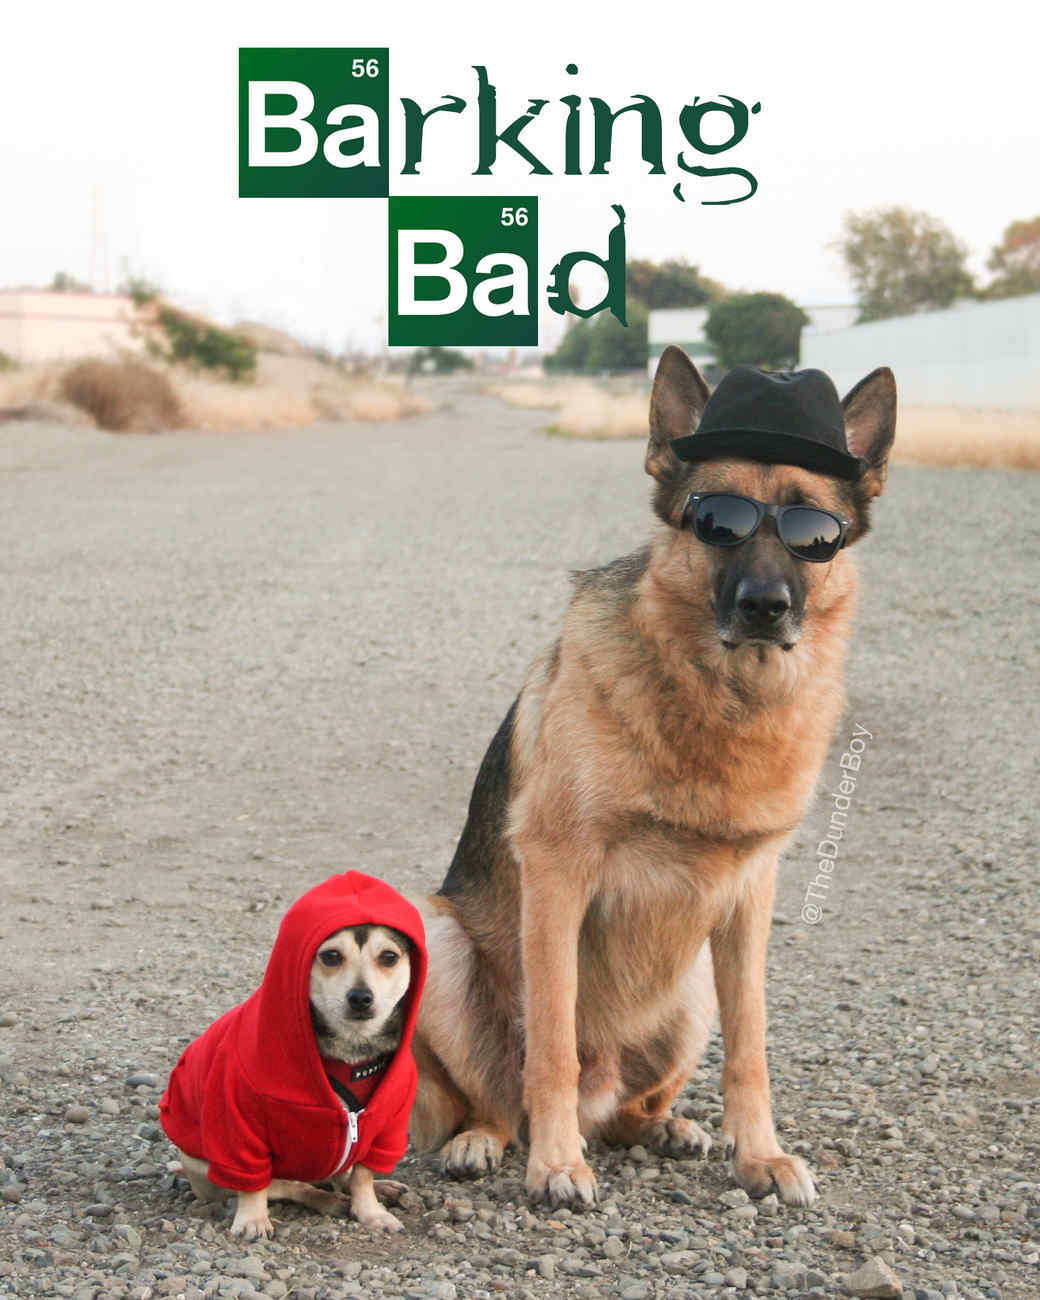 barking-bad-halloween-thedunderboy.jpg